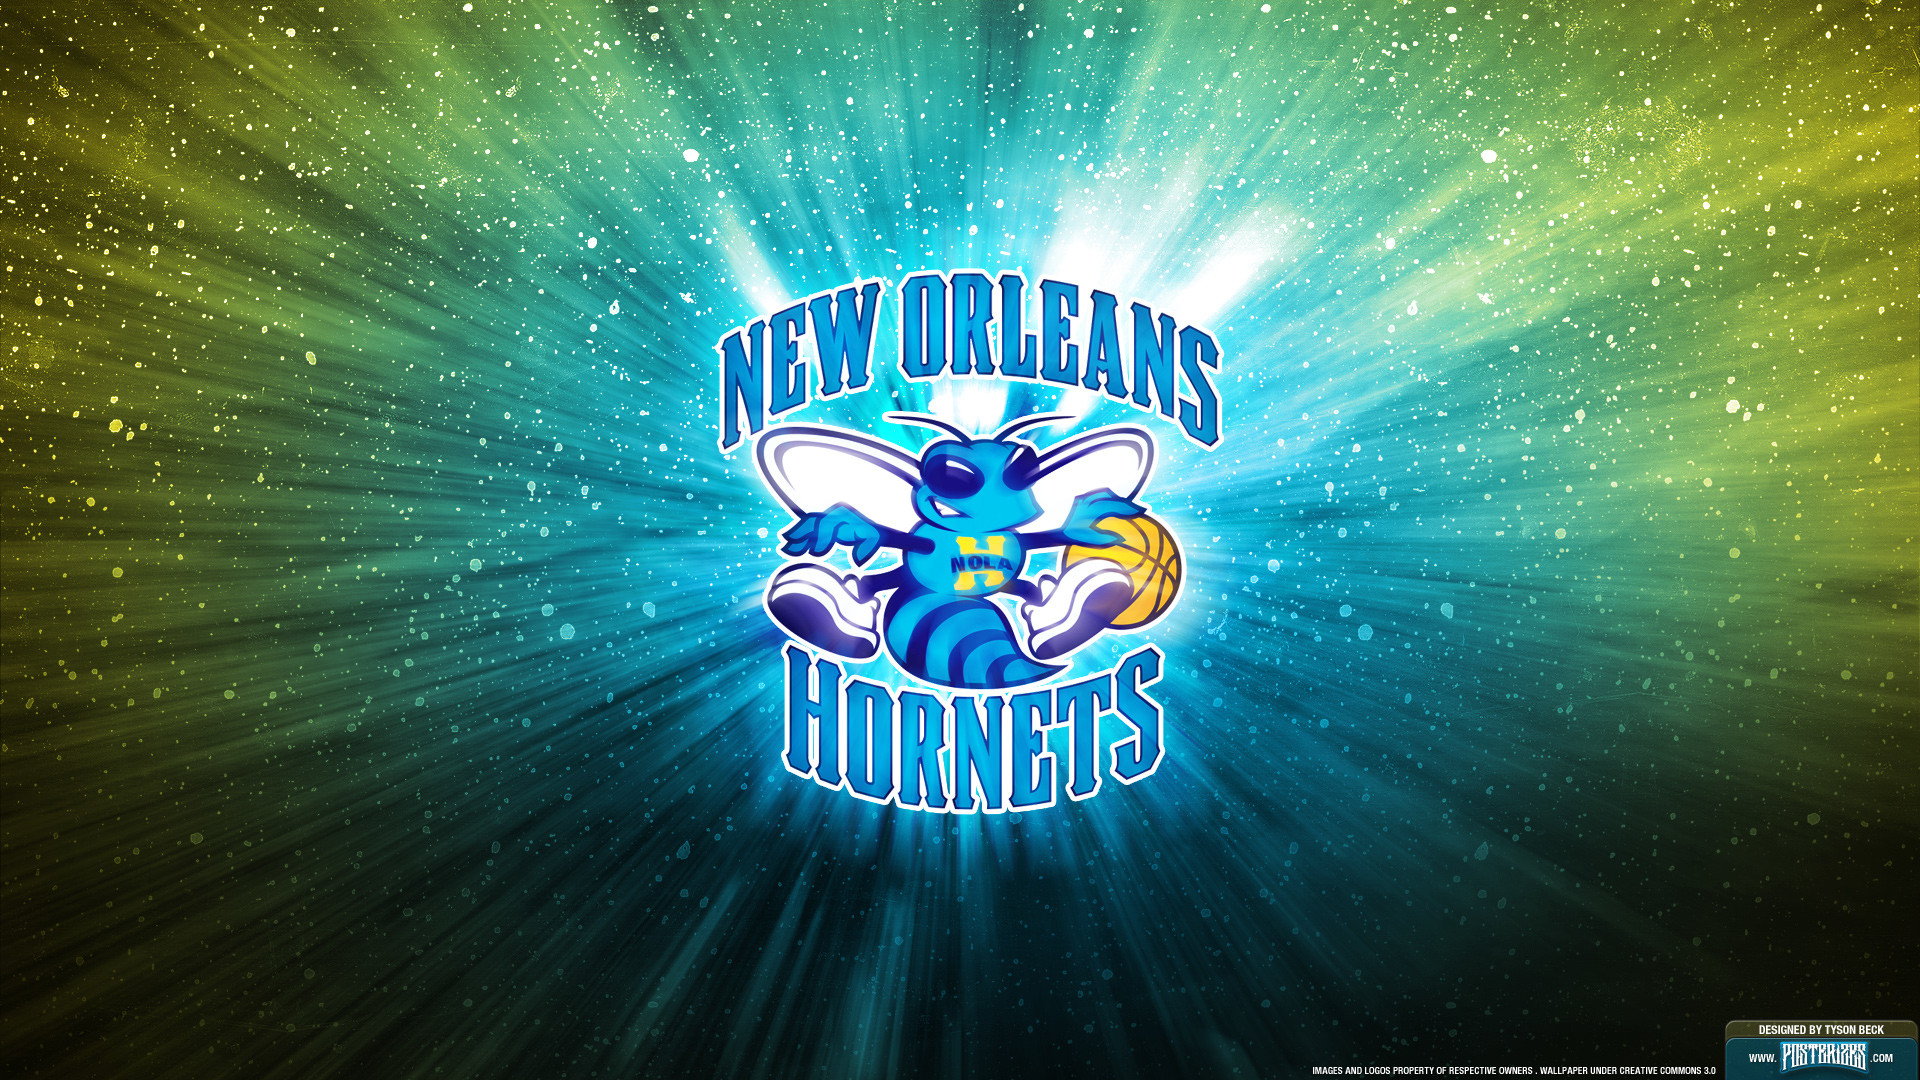 Res: 1920x1080, NEW ORLEANS HORNETS pelicans nba basketball (9) wallpaper |  |  227650 | WallpaperUP